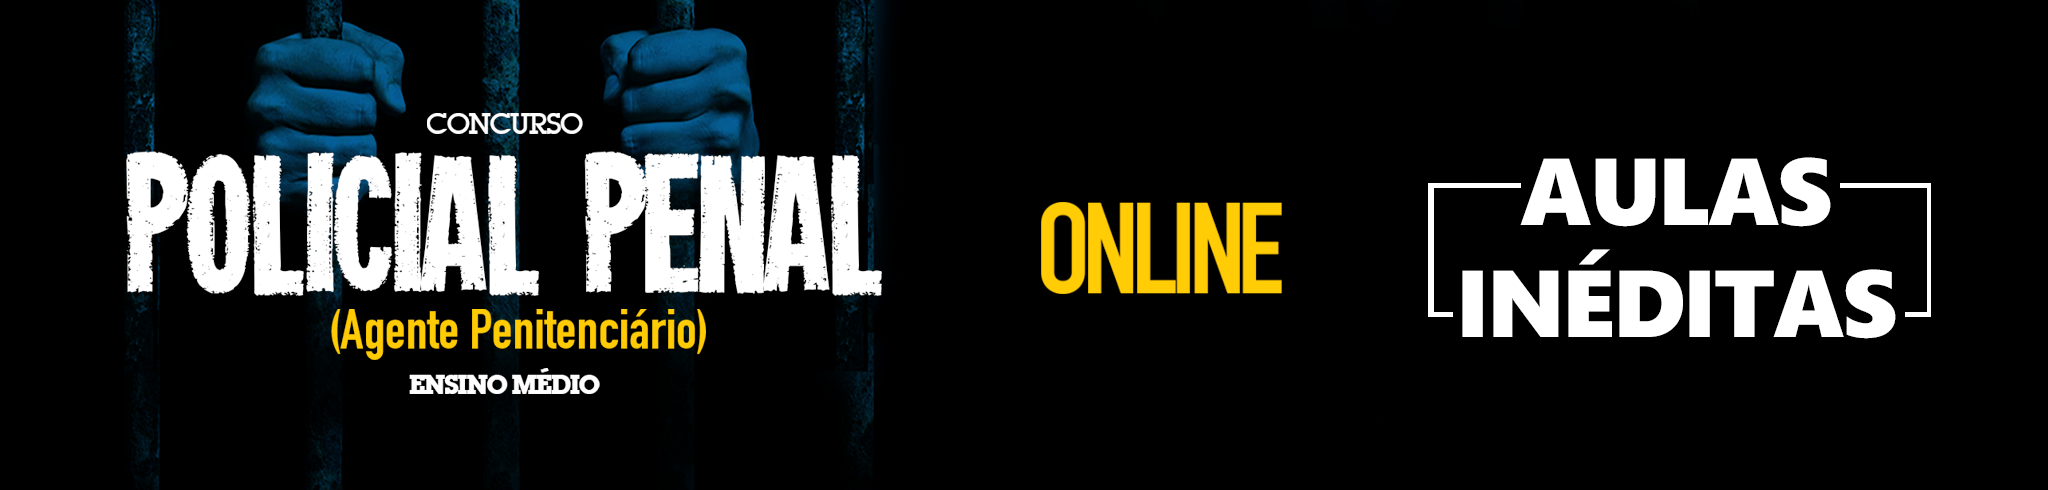 Policial Penal - Online